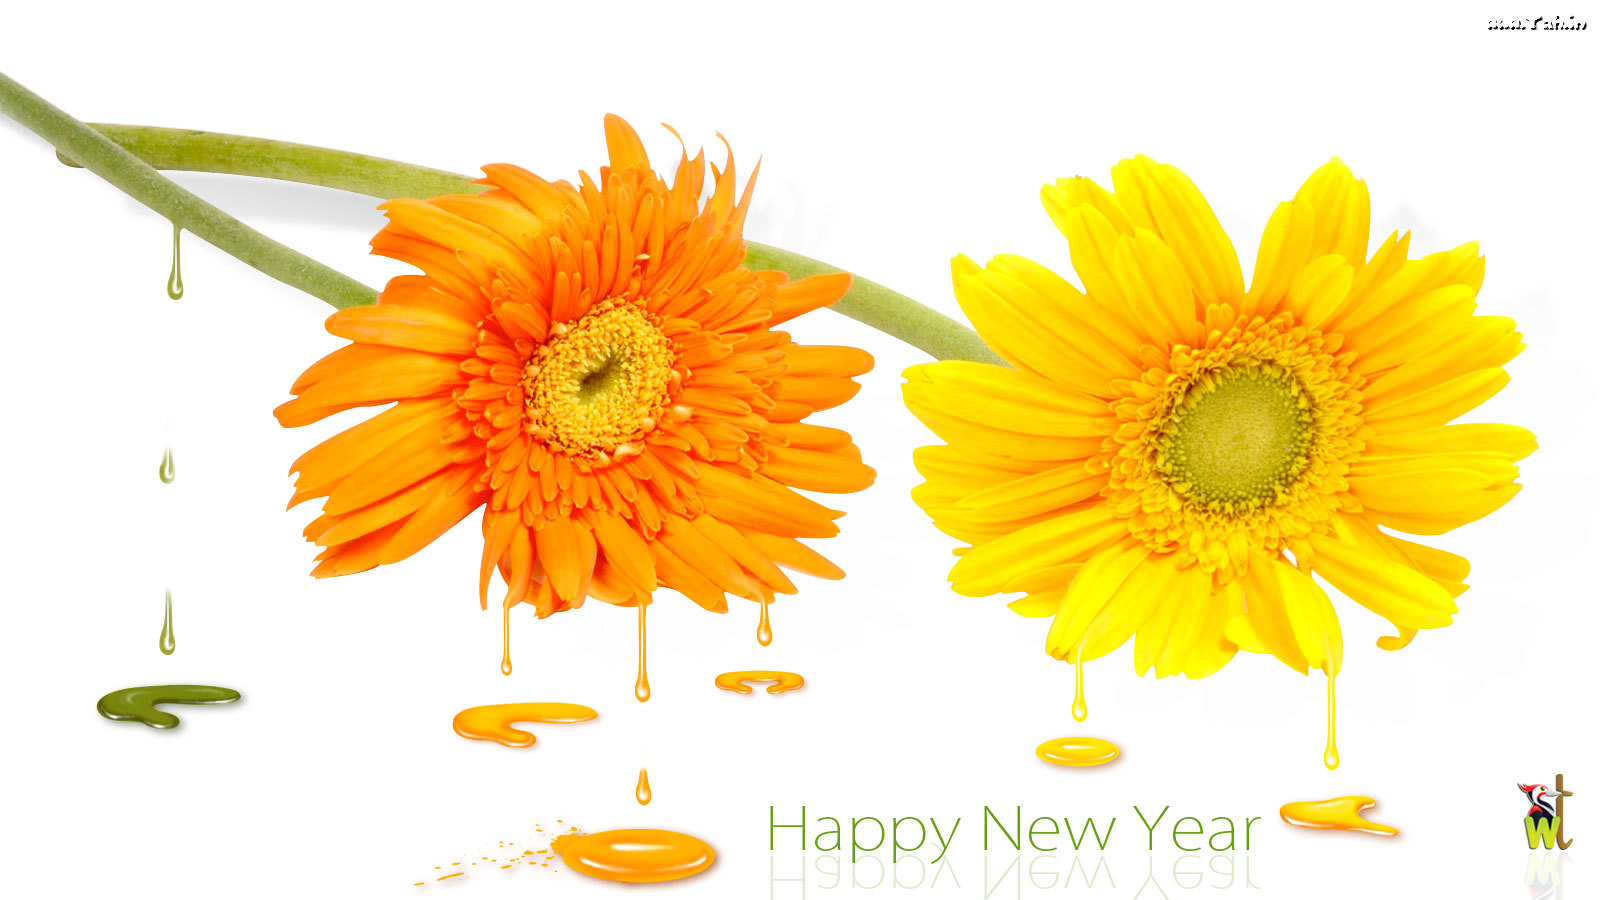 Happy new year wishes wallpapers sms gifts